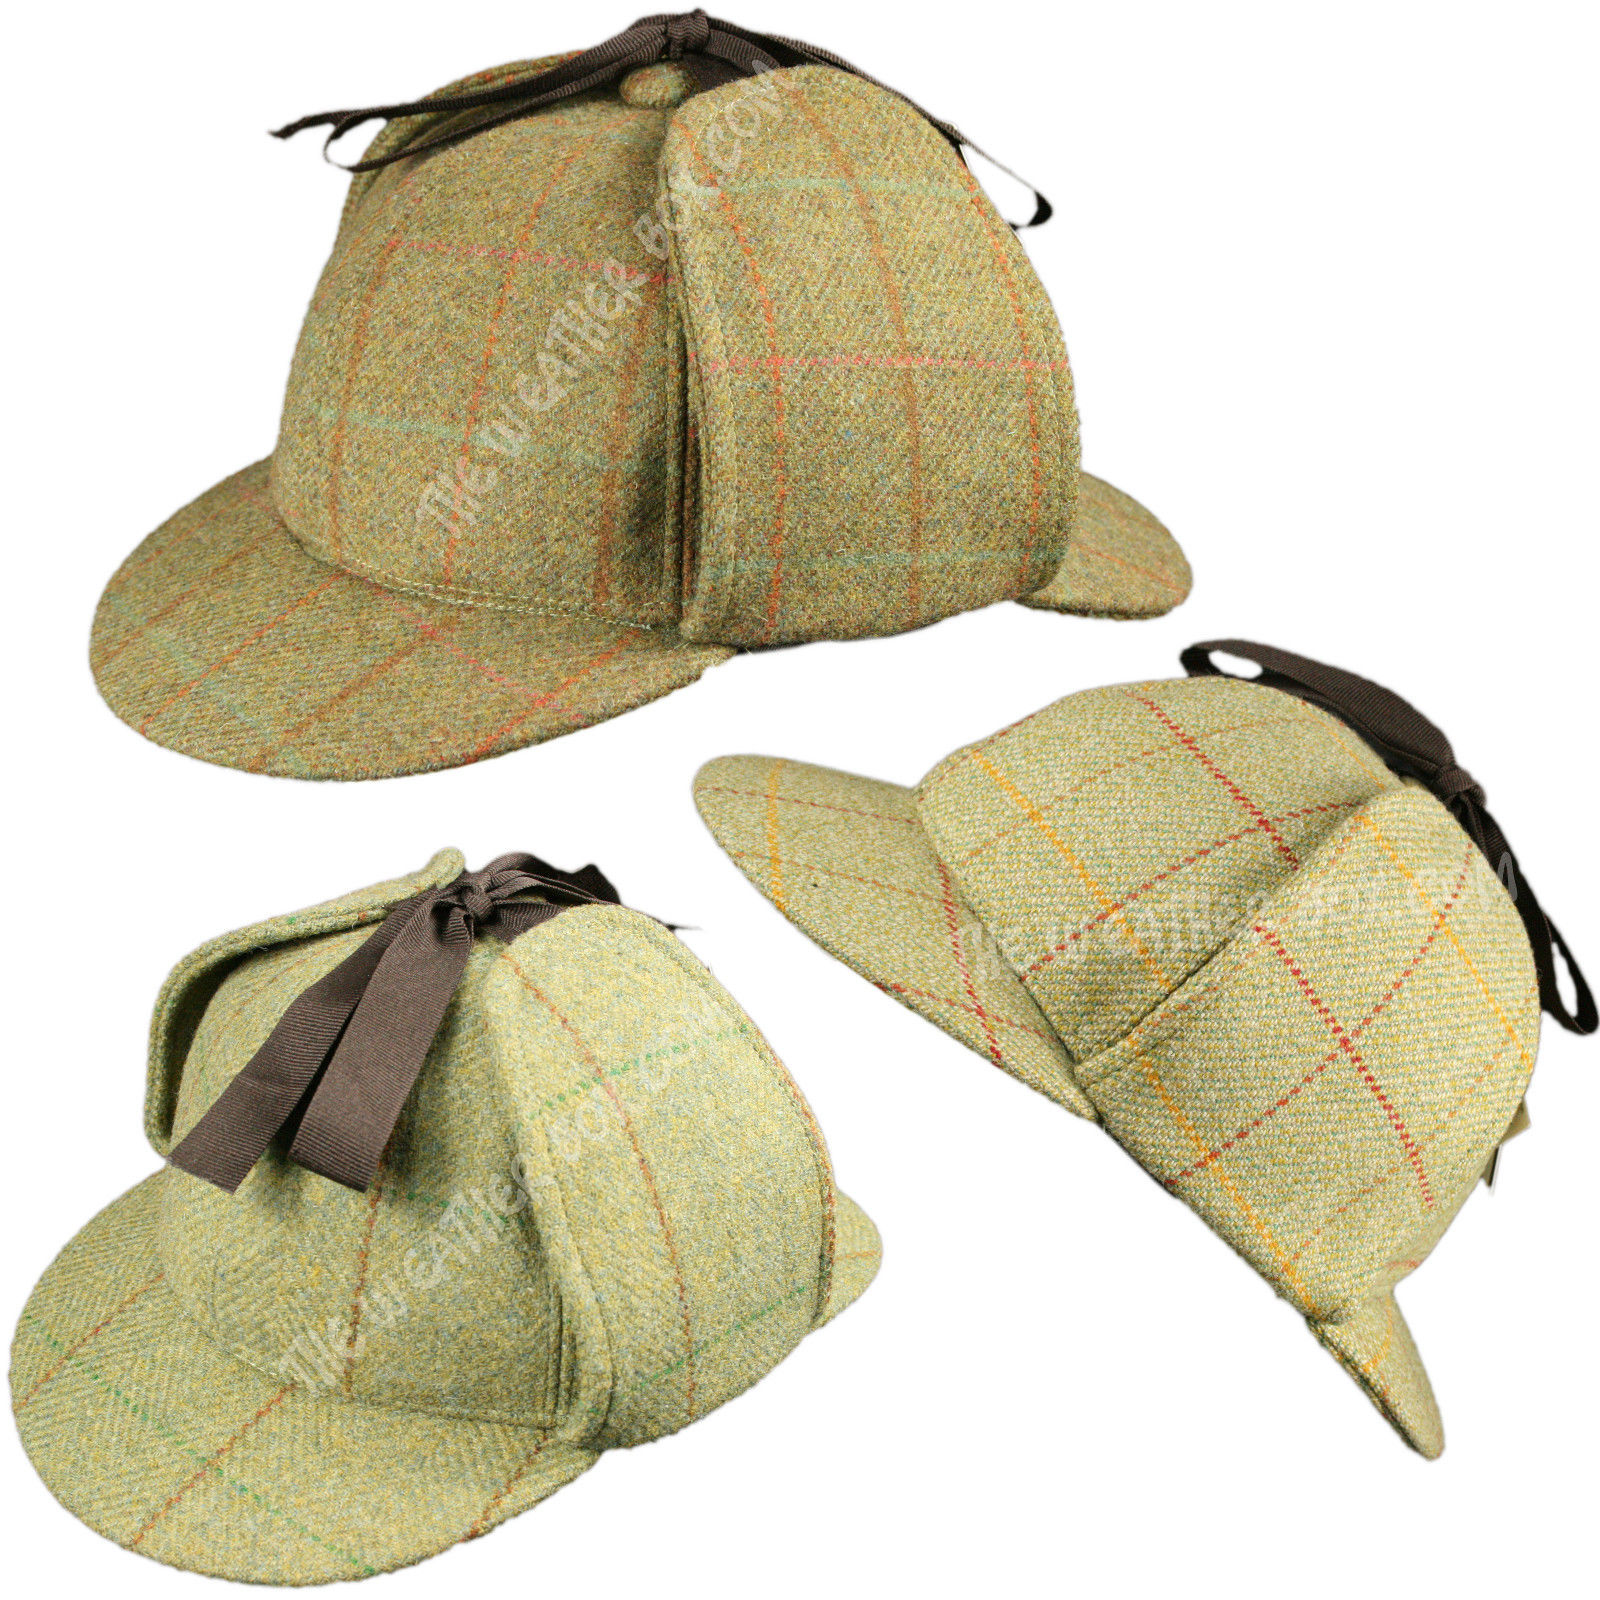 100 Wool Tweed Deerstalker Hat Waterproof Sherlock Holmes English